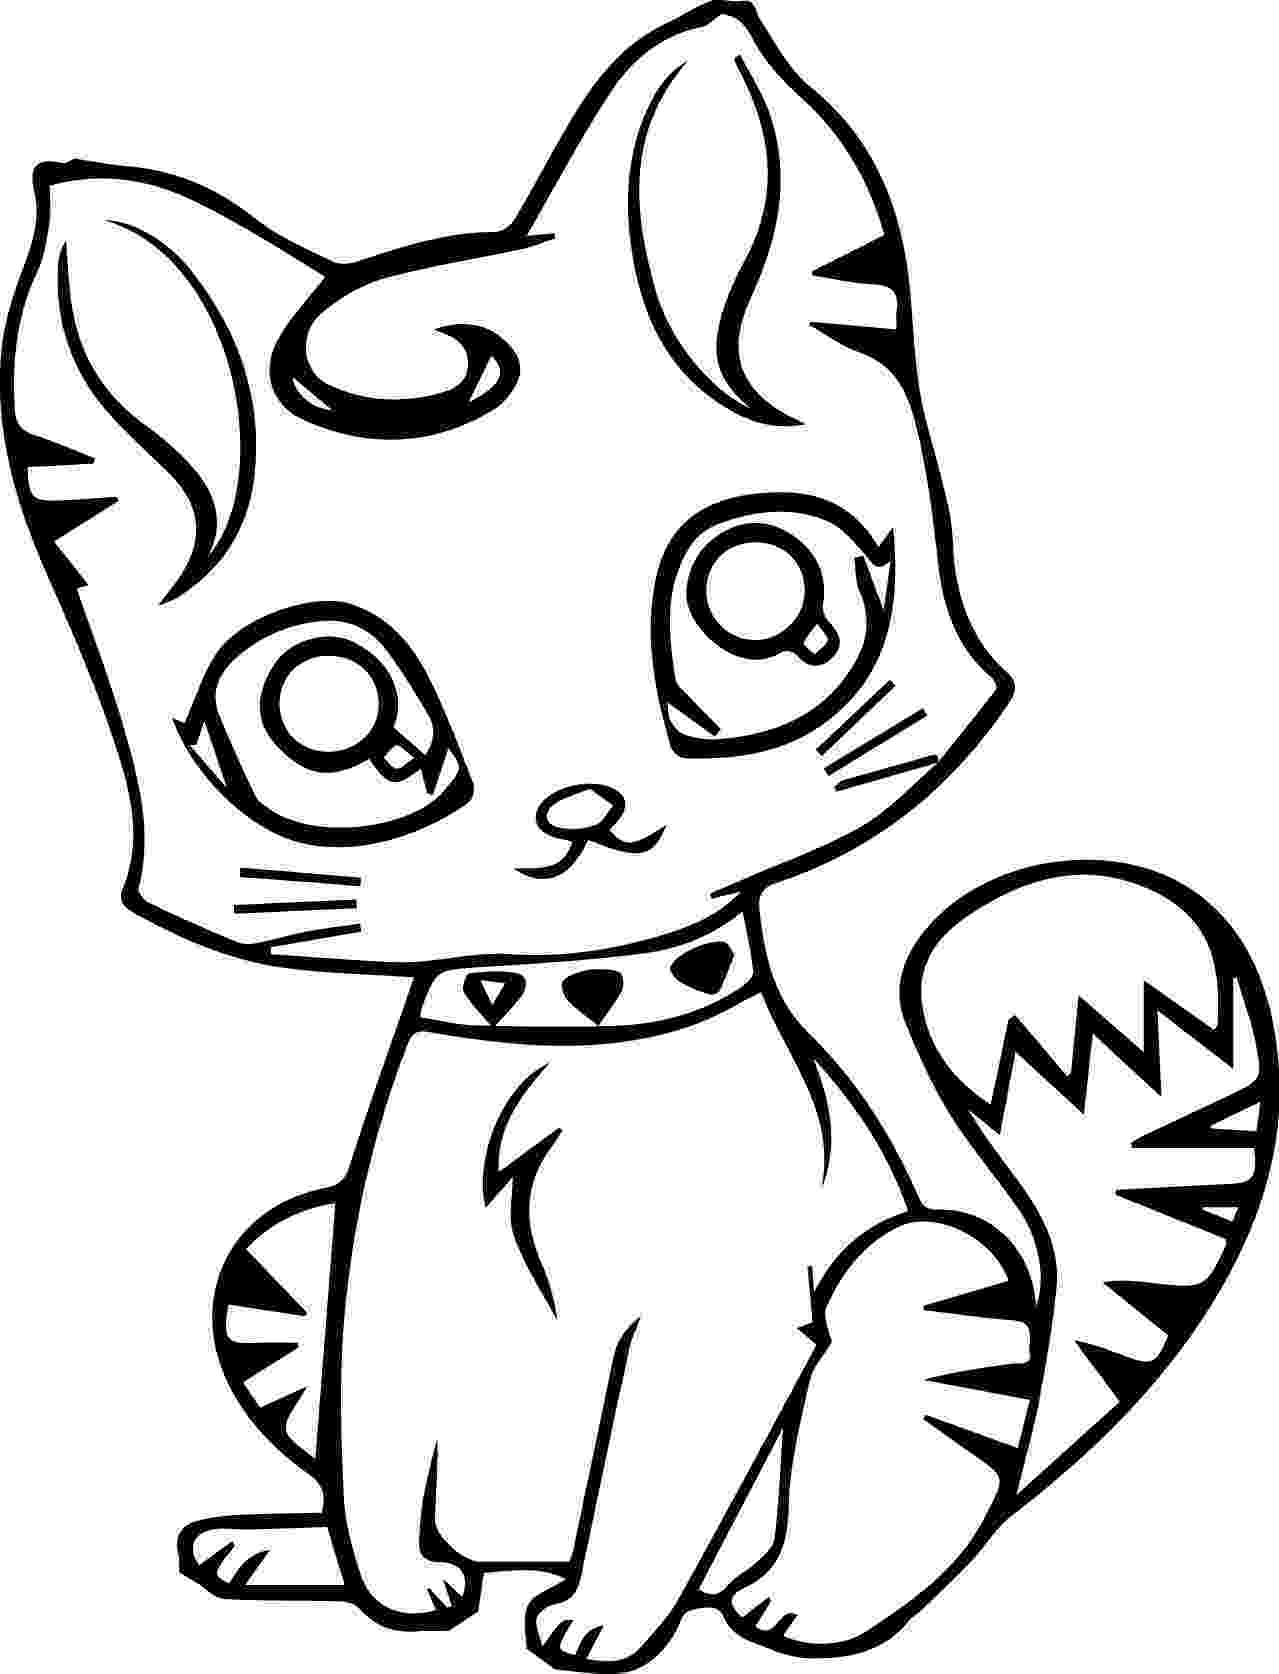 cat color pages free printable cat coloring pages for kids pages cat color 1 1